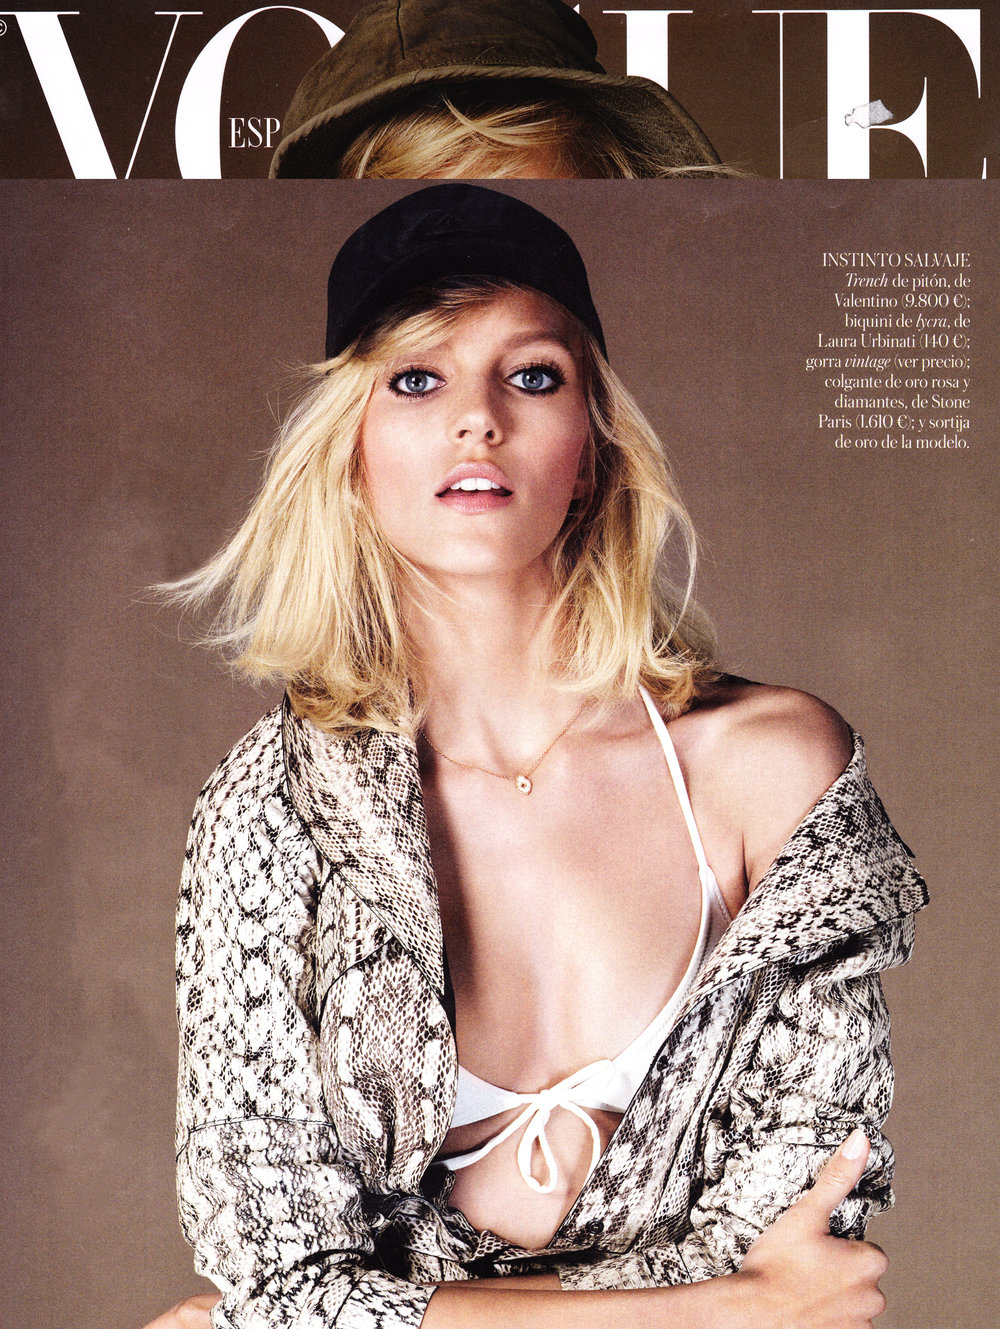 Anja Rubik - Vogue Spain 2013